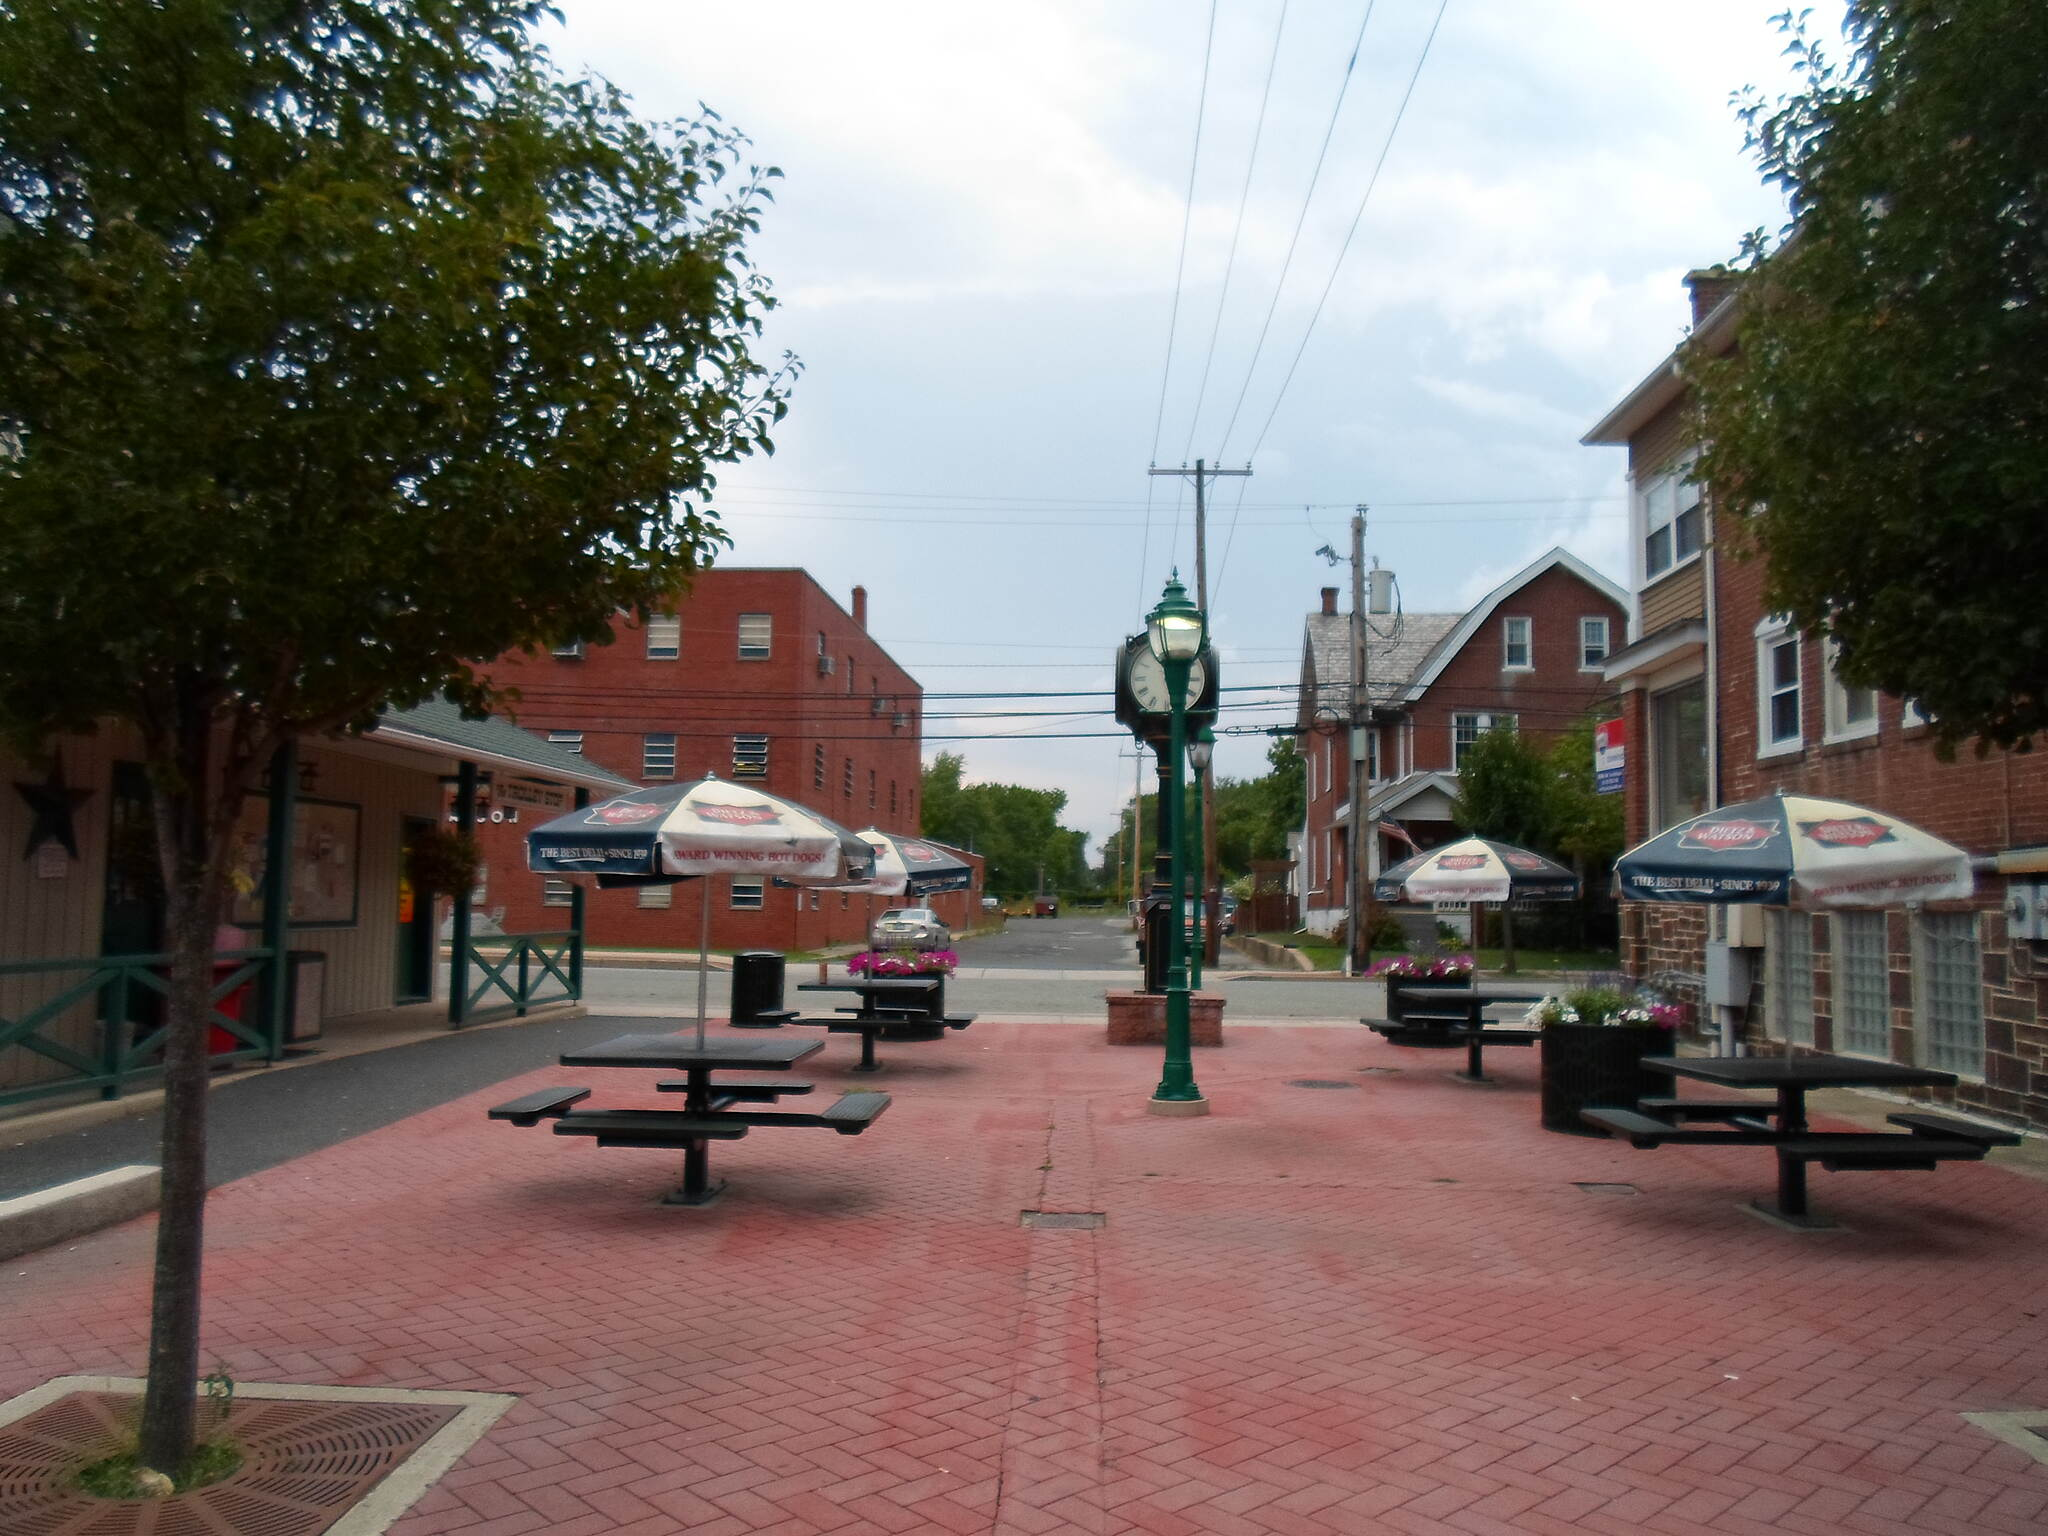 Liberty Bell Trail Liberty Bell Trail The trail's northern terminus is currently at Liberty Bell Plaza, a small square in Hatfield. Ambitious plans call for it to be extended northward to Quakertown in the future. Taken August 2016.